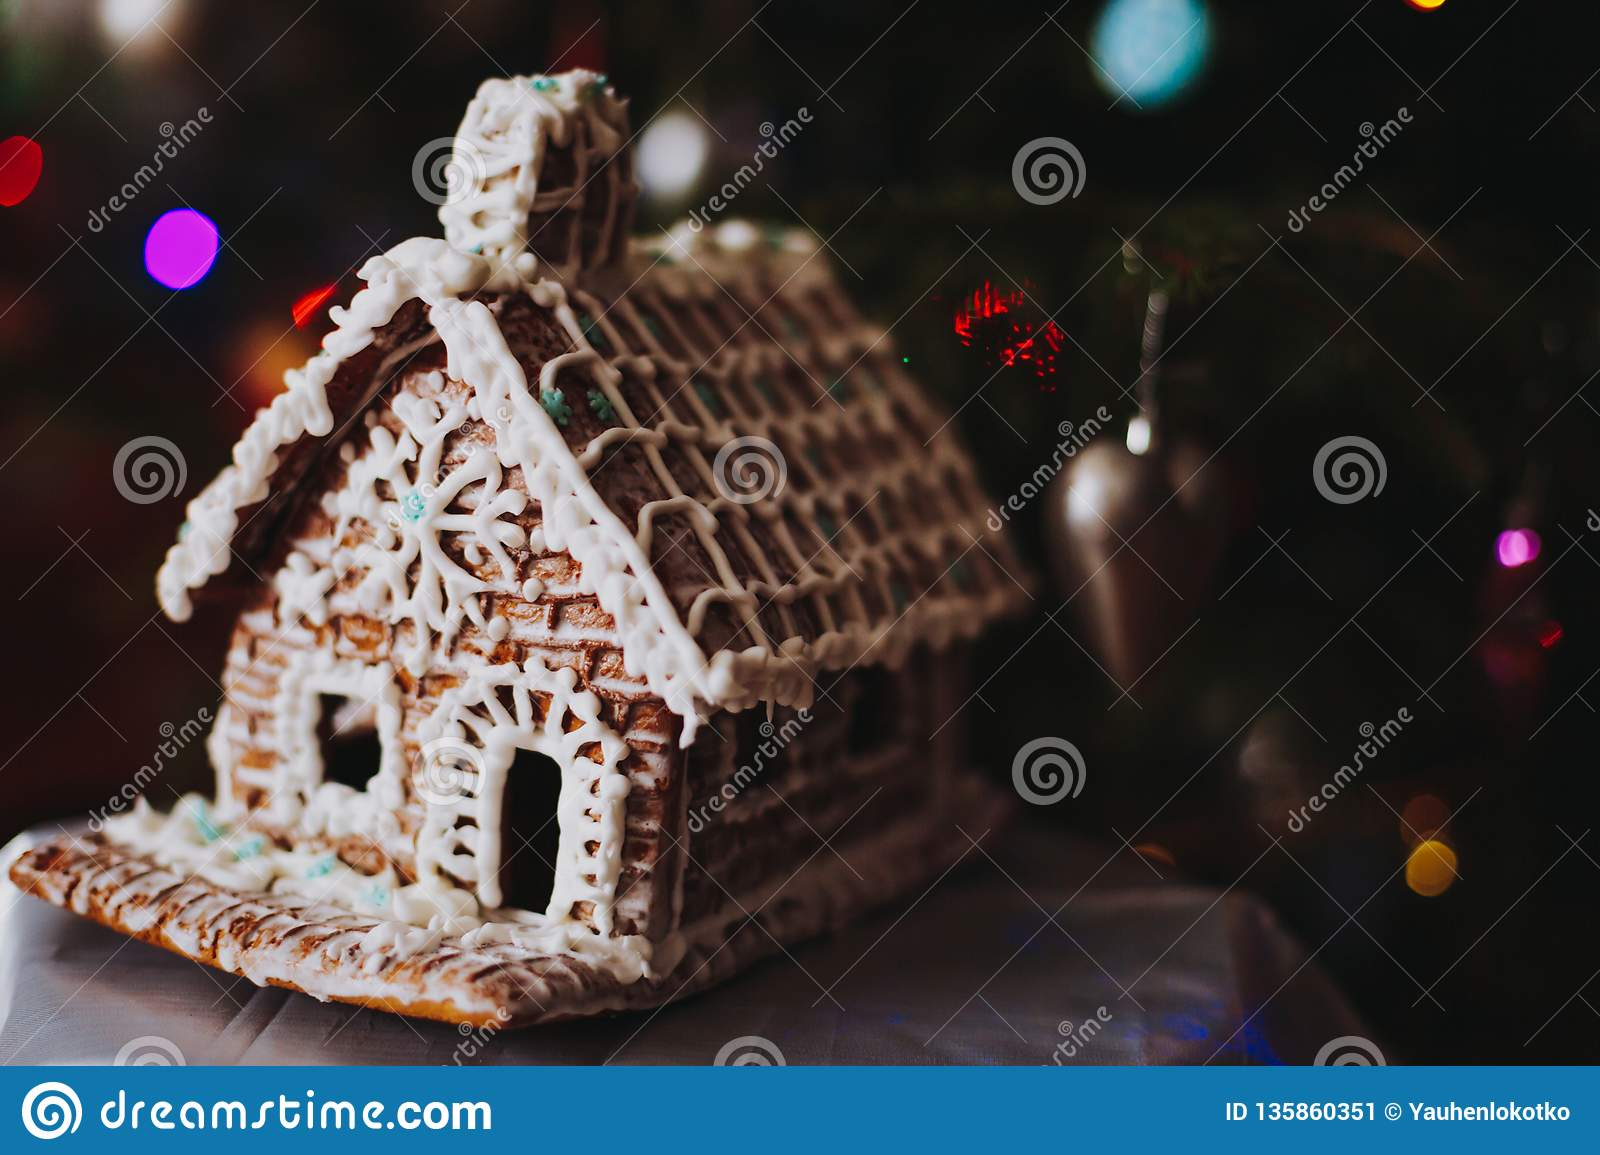 Diy Gingerbread House With Icing Sugar Stock Image Image